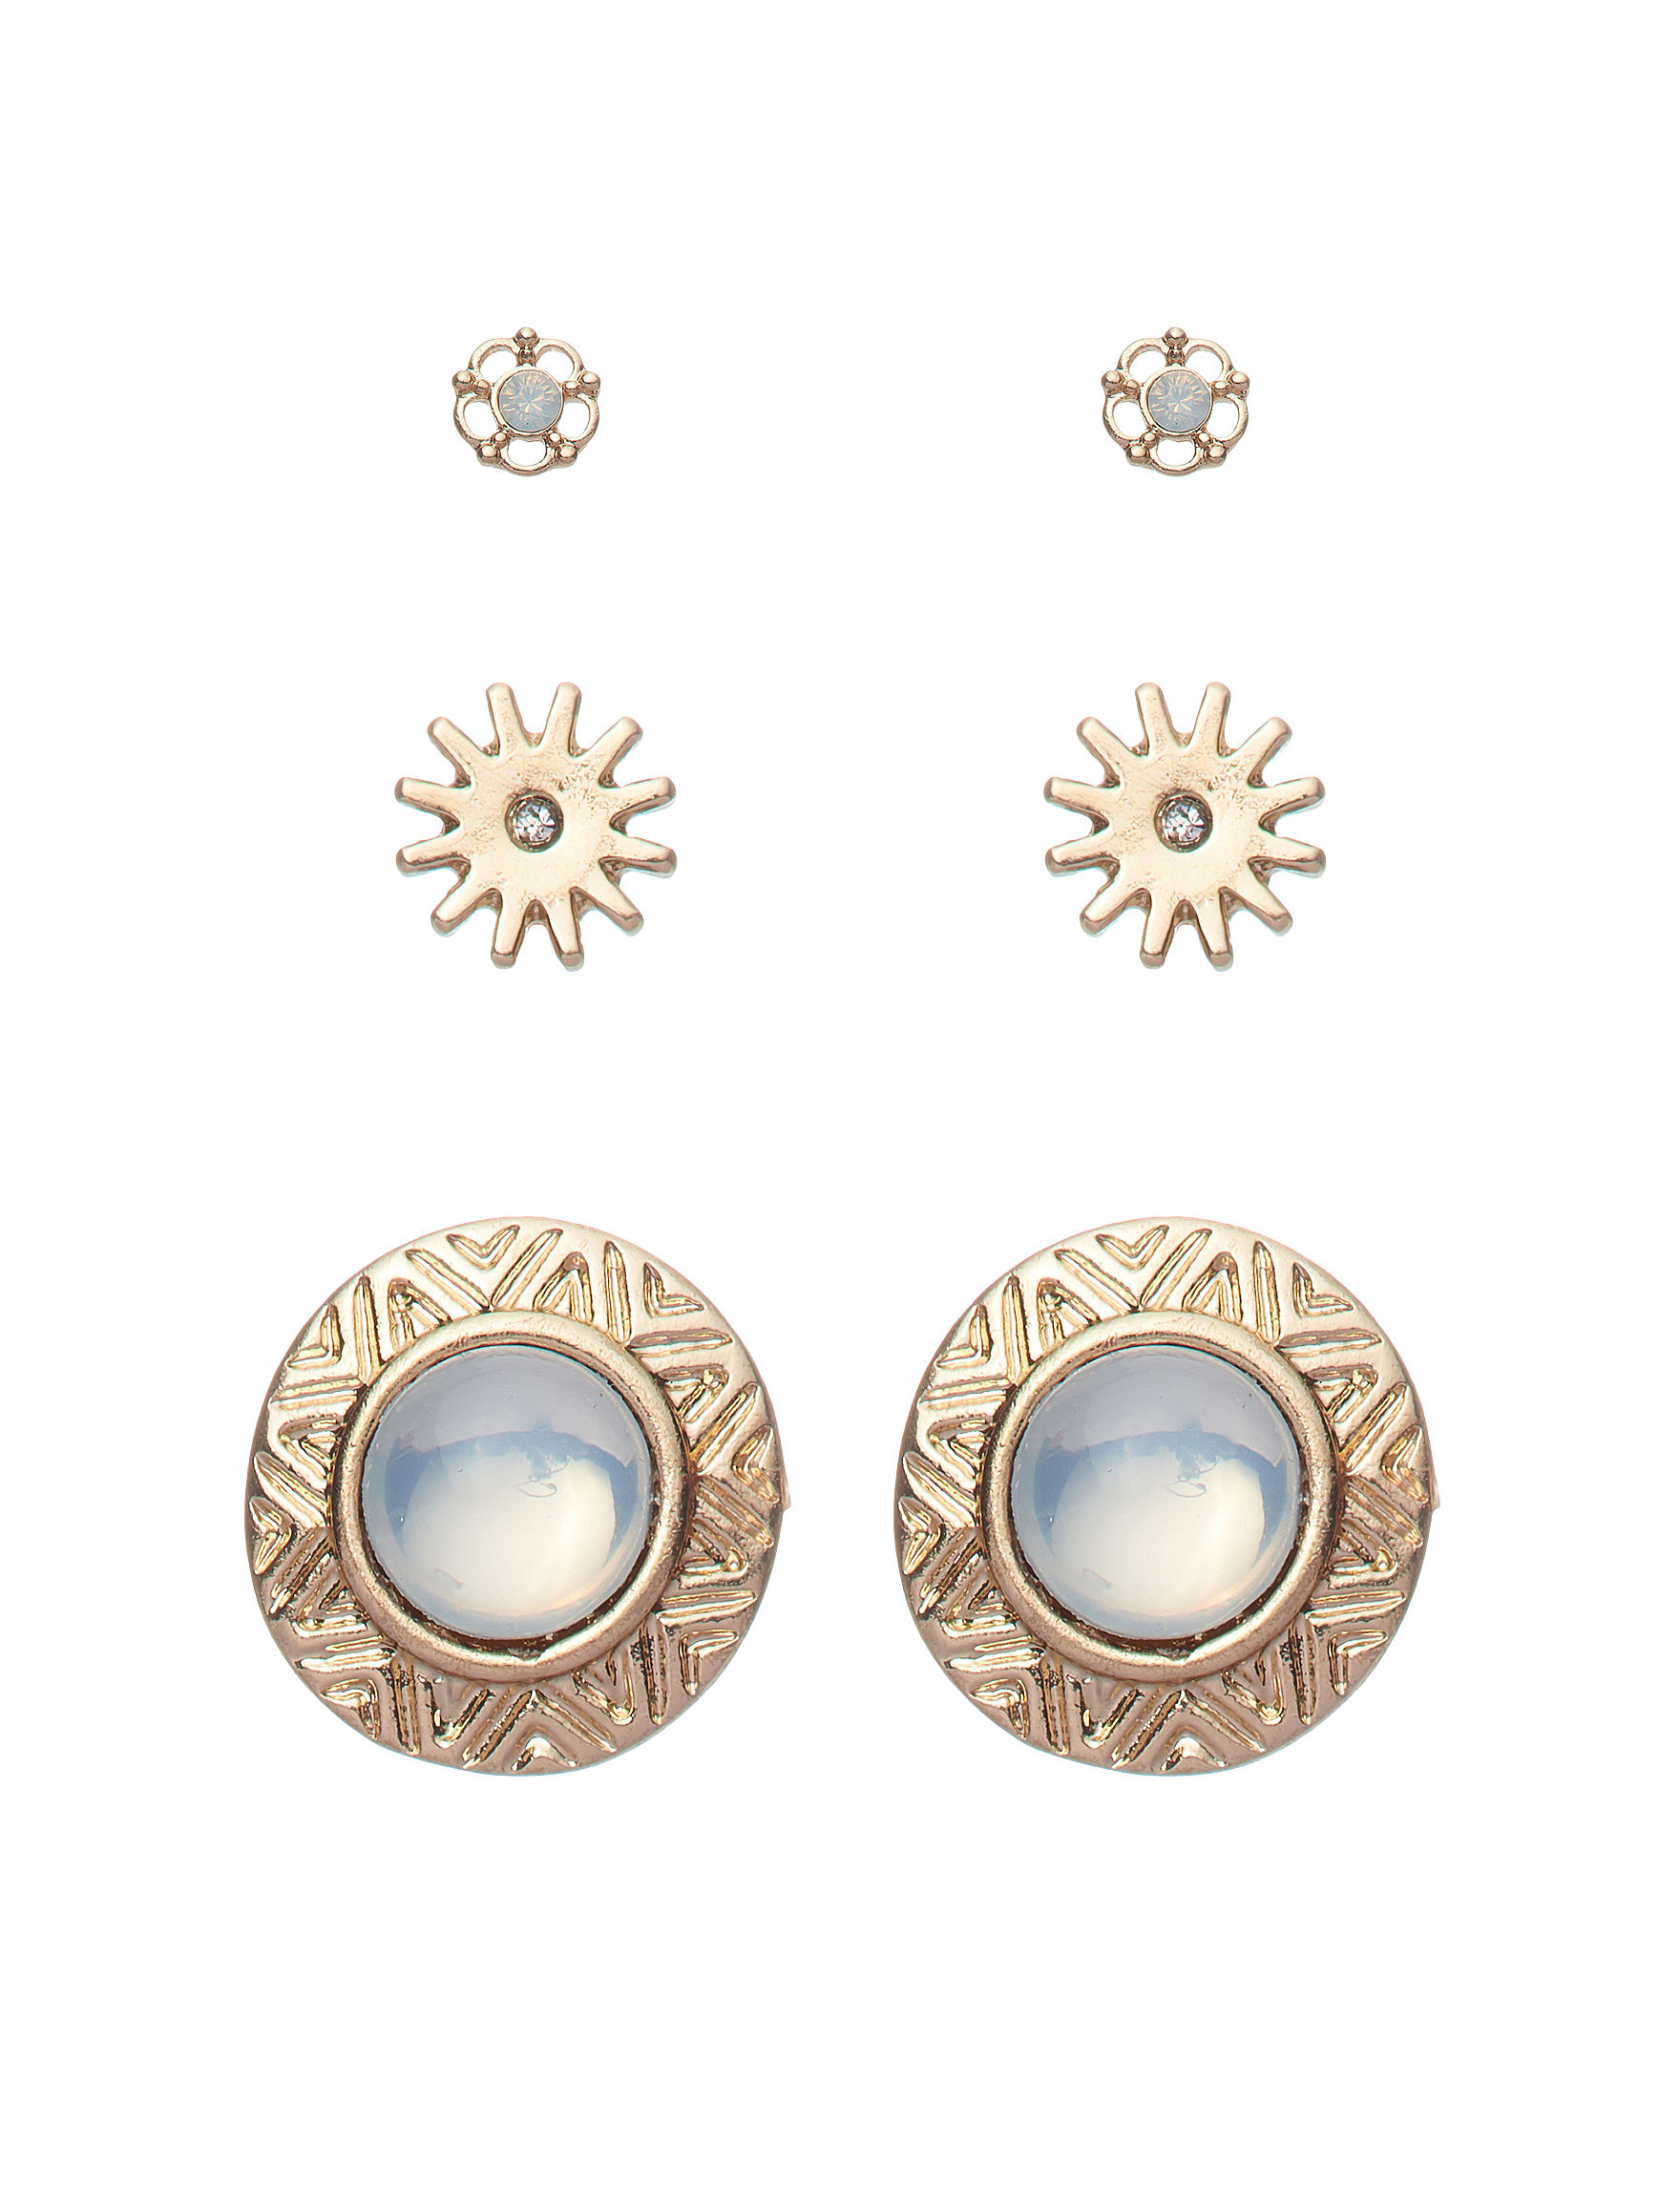 Signature Studio Gold Studs Earrings Fashion Jewelry